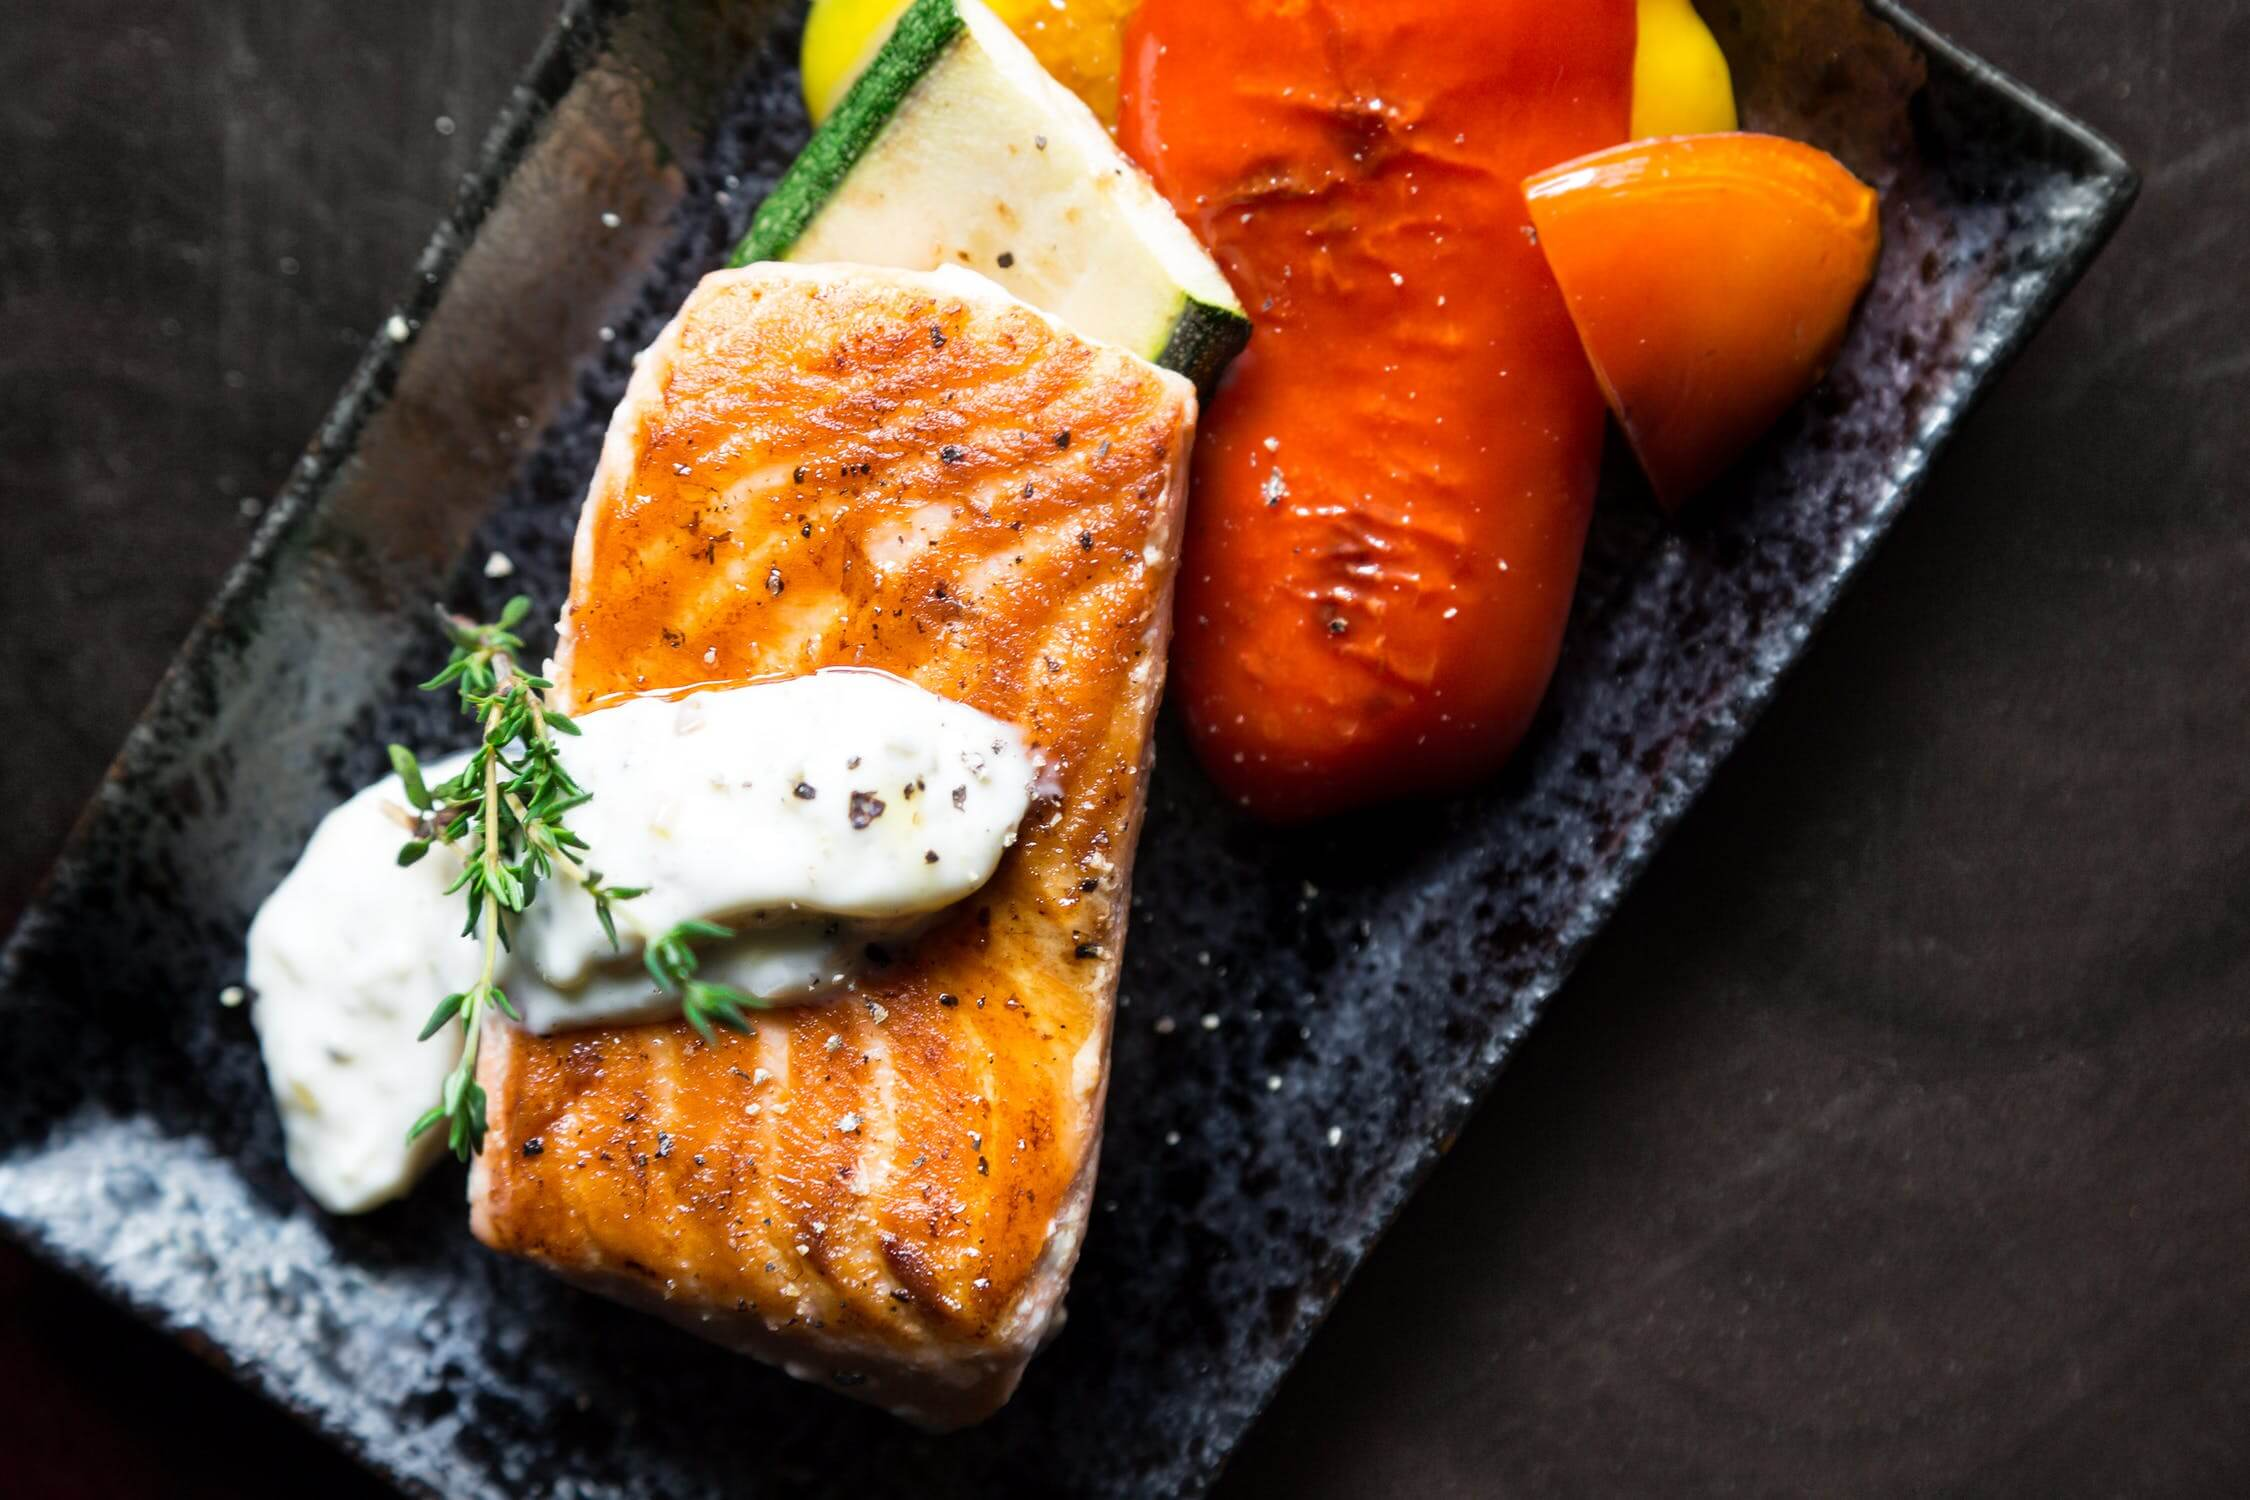 A dinner plate with fresh salmon on it. Oily fish is a great option for seniors with diabetes